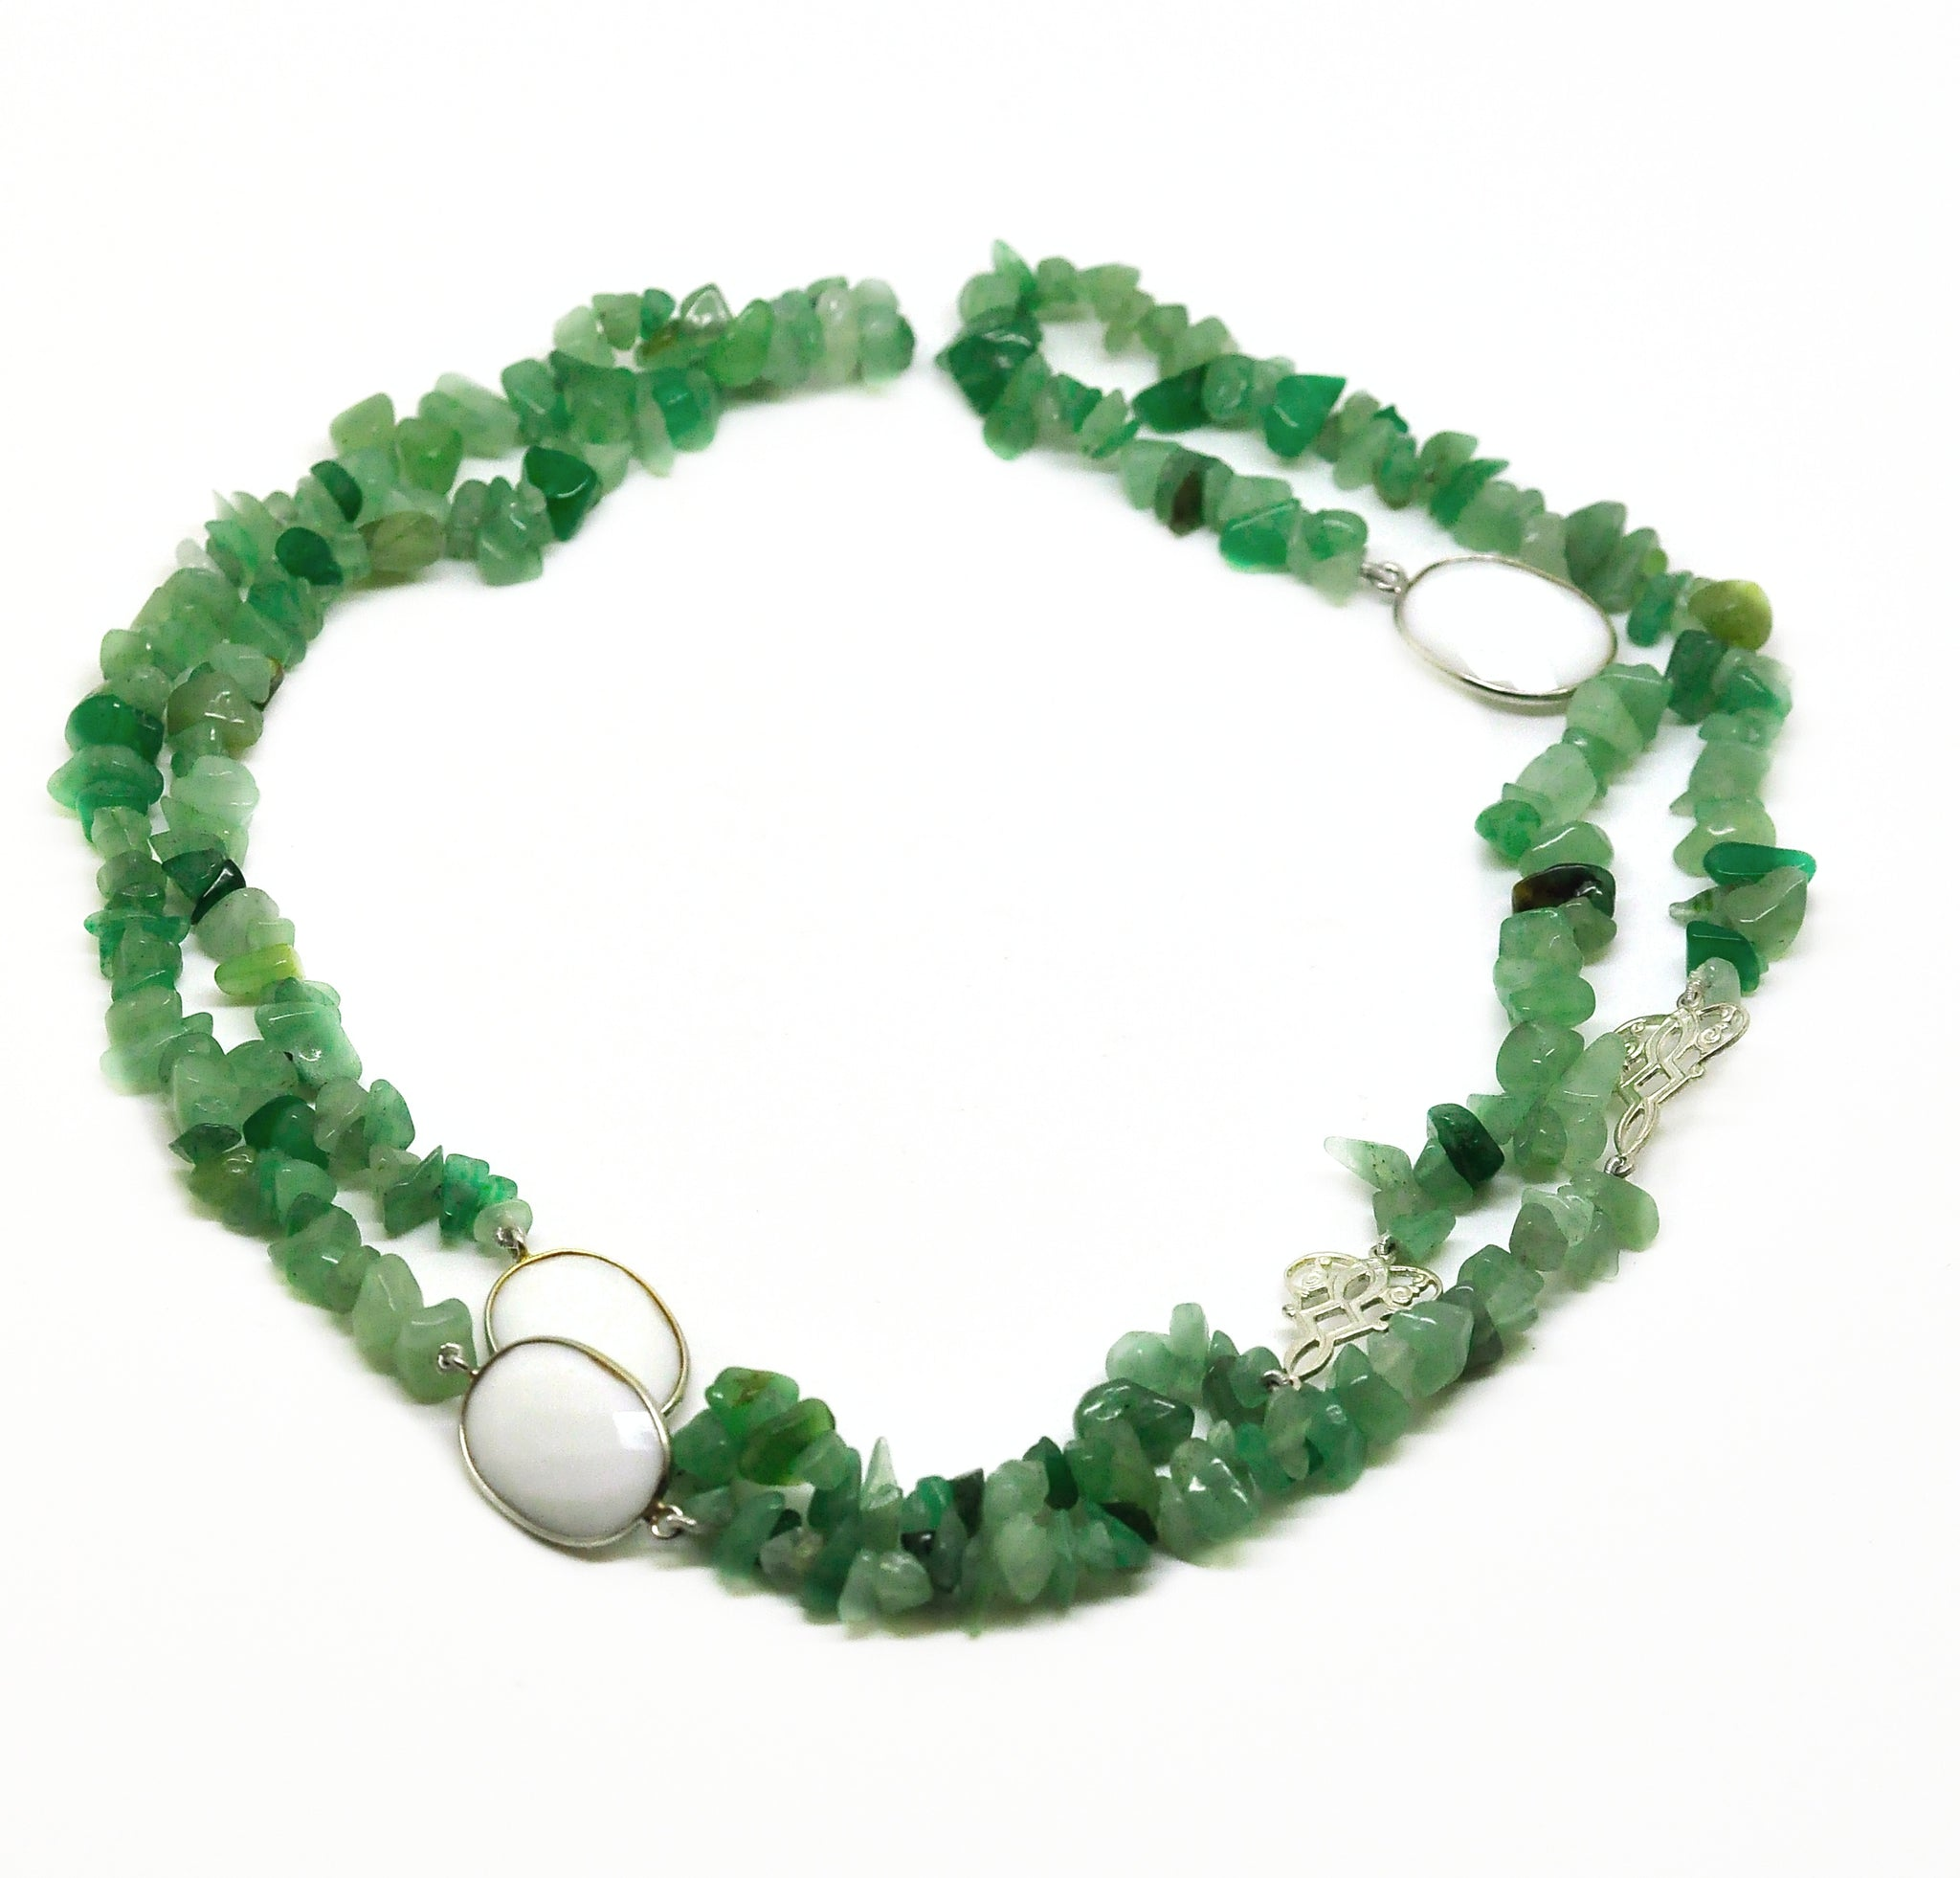 ON SALE Gemstone string - Aventurine